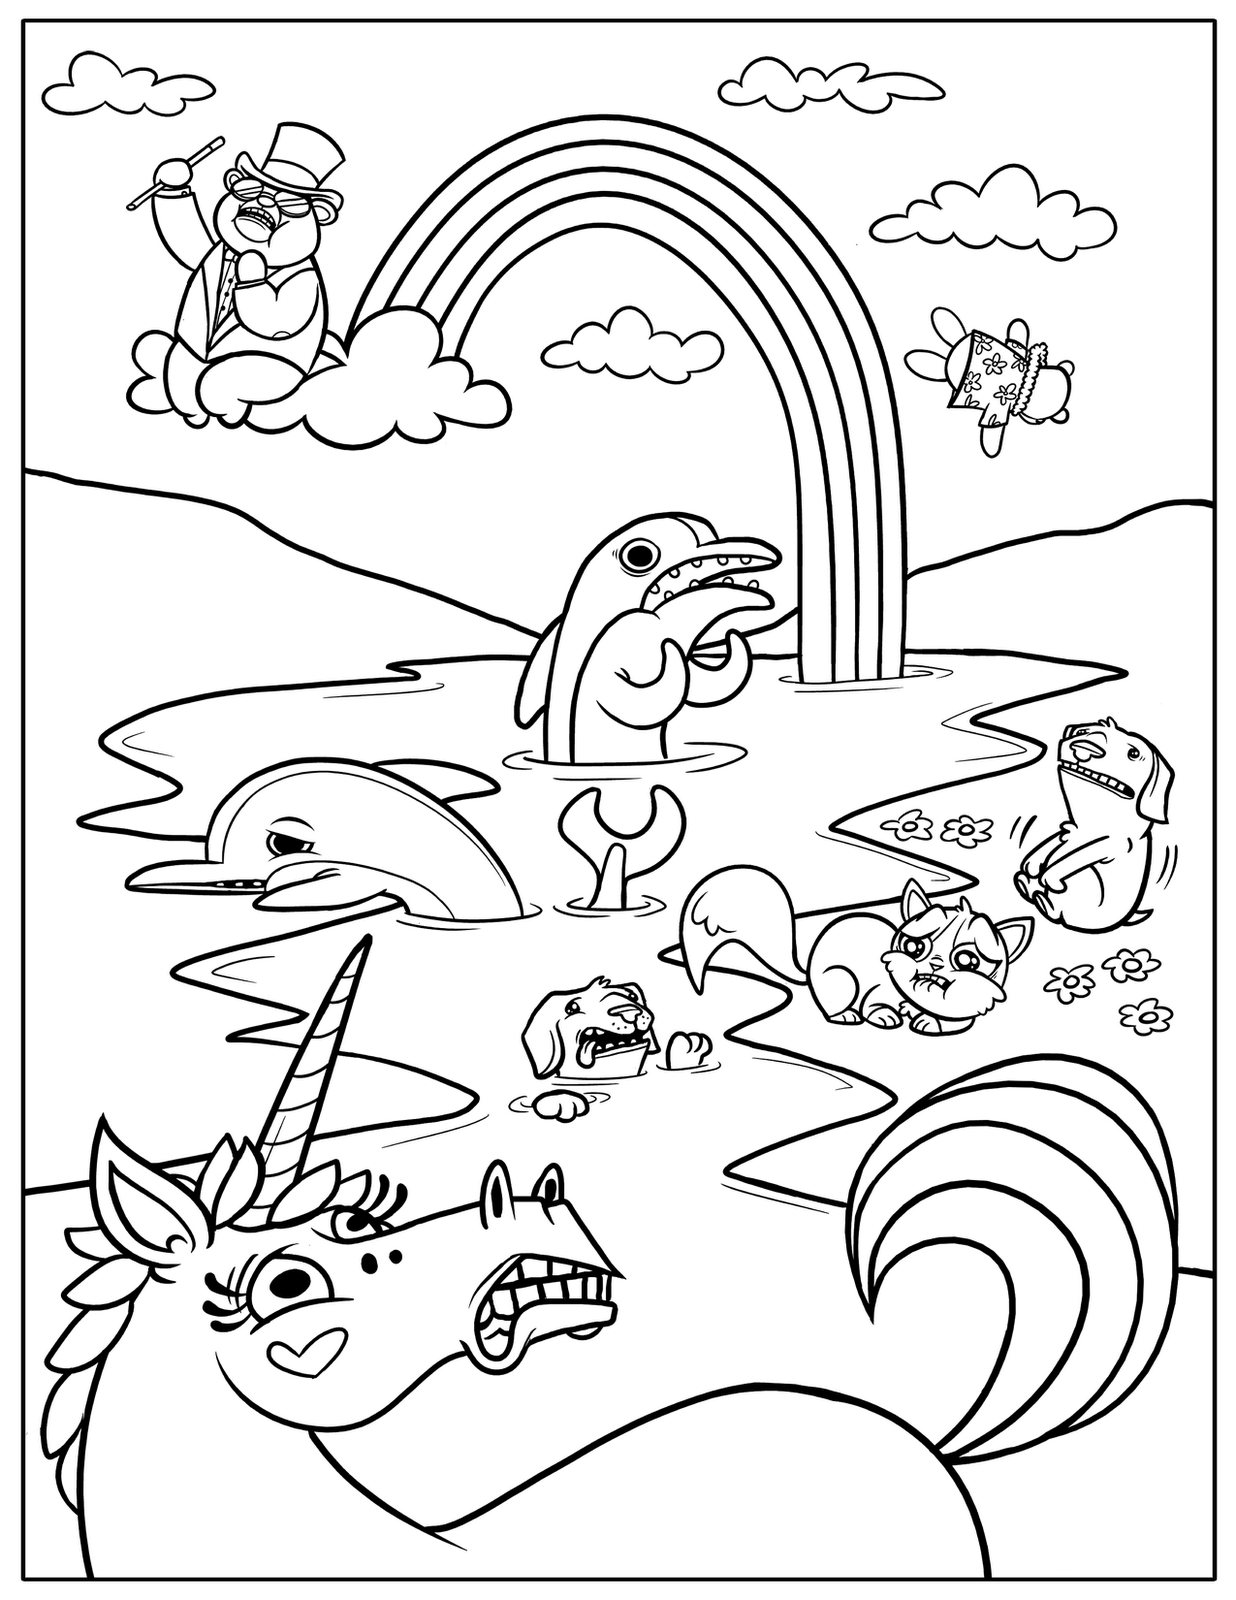 free pictures to print and colour princess coloring pages best coloring pages for kids free colour pictures print to and